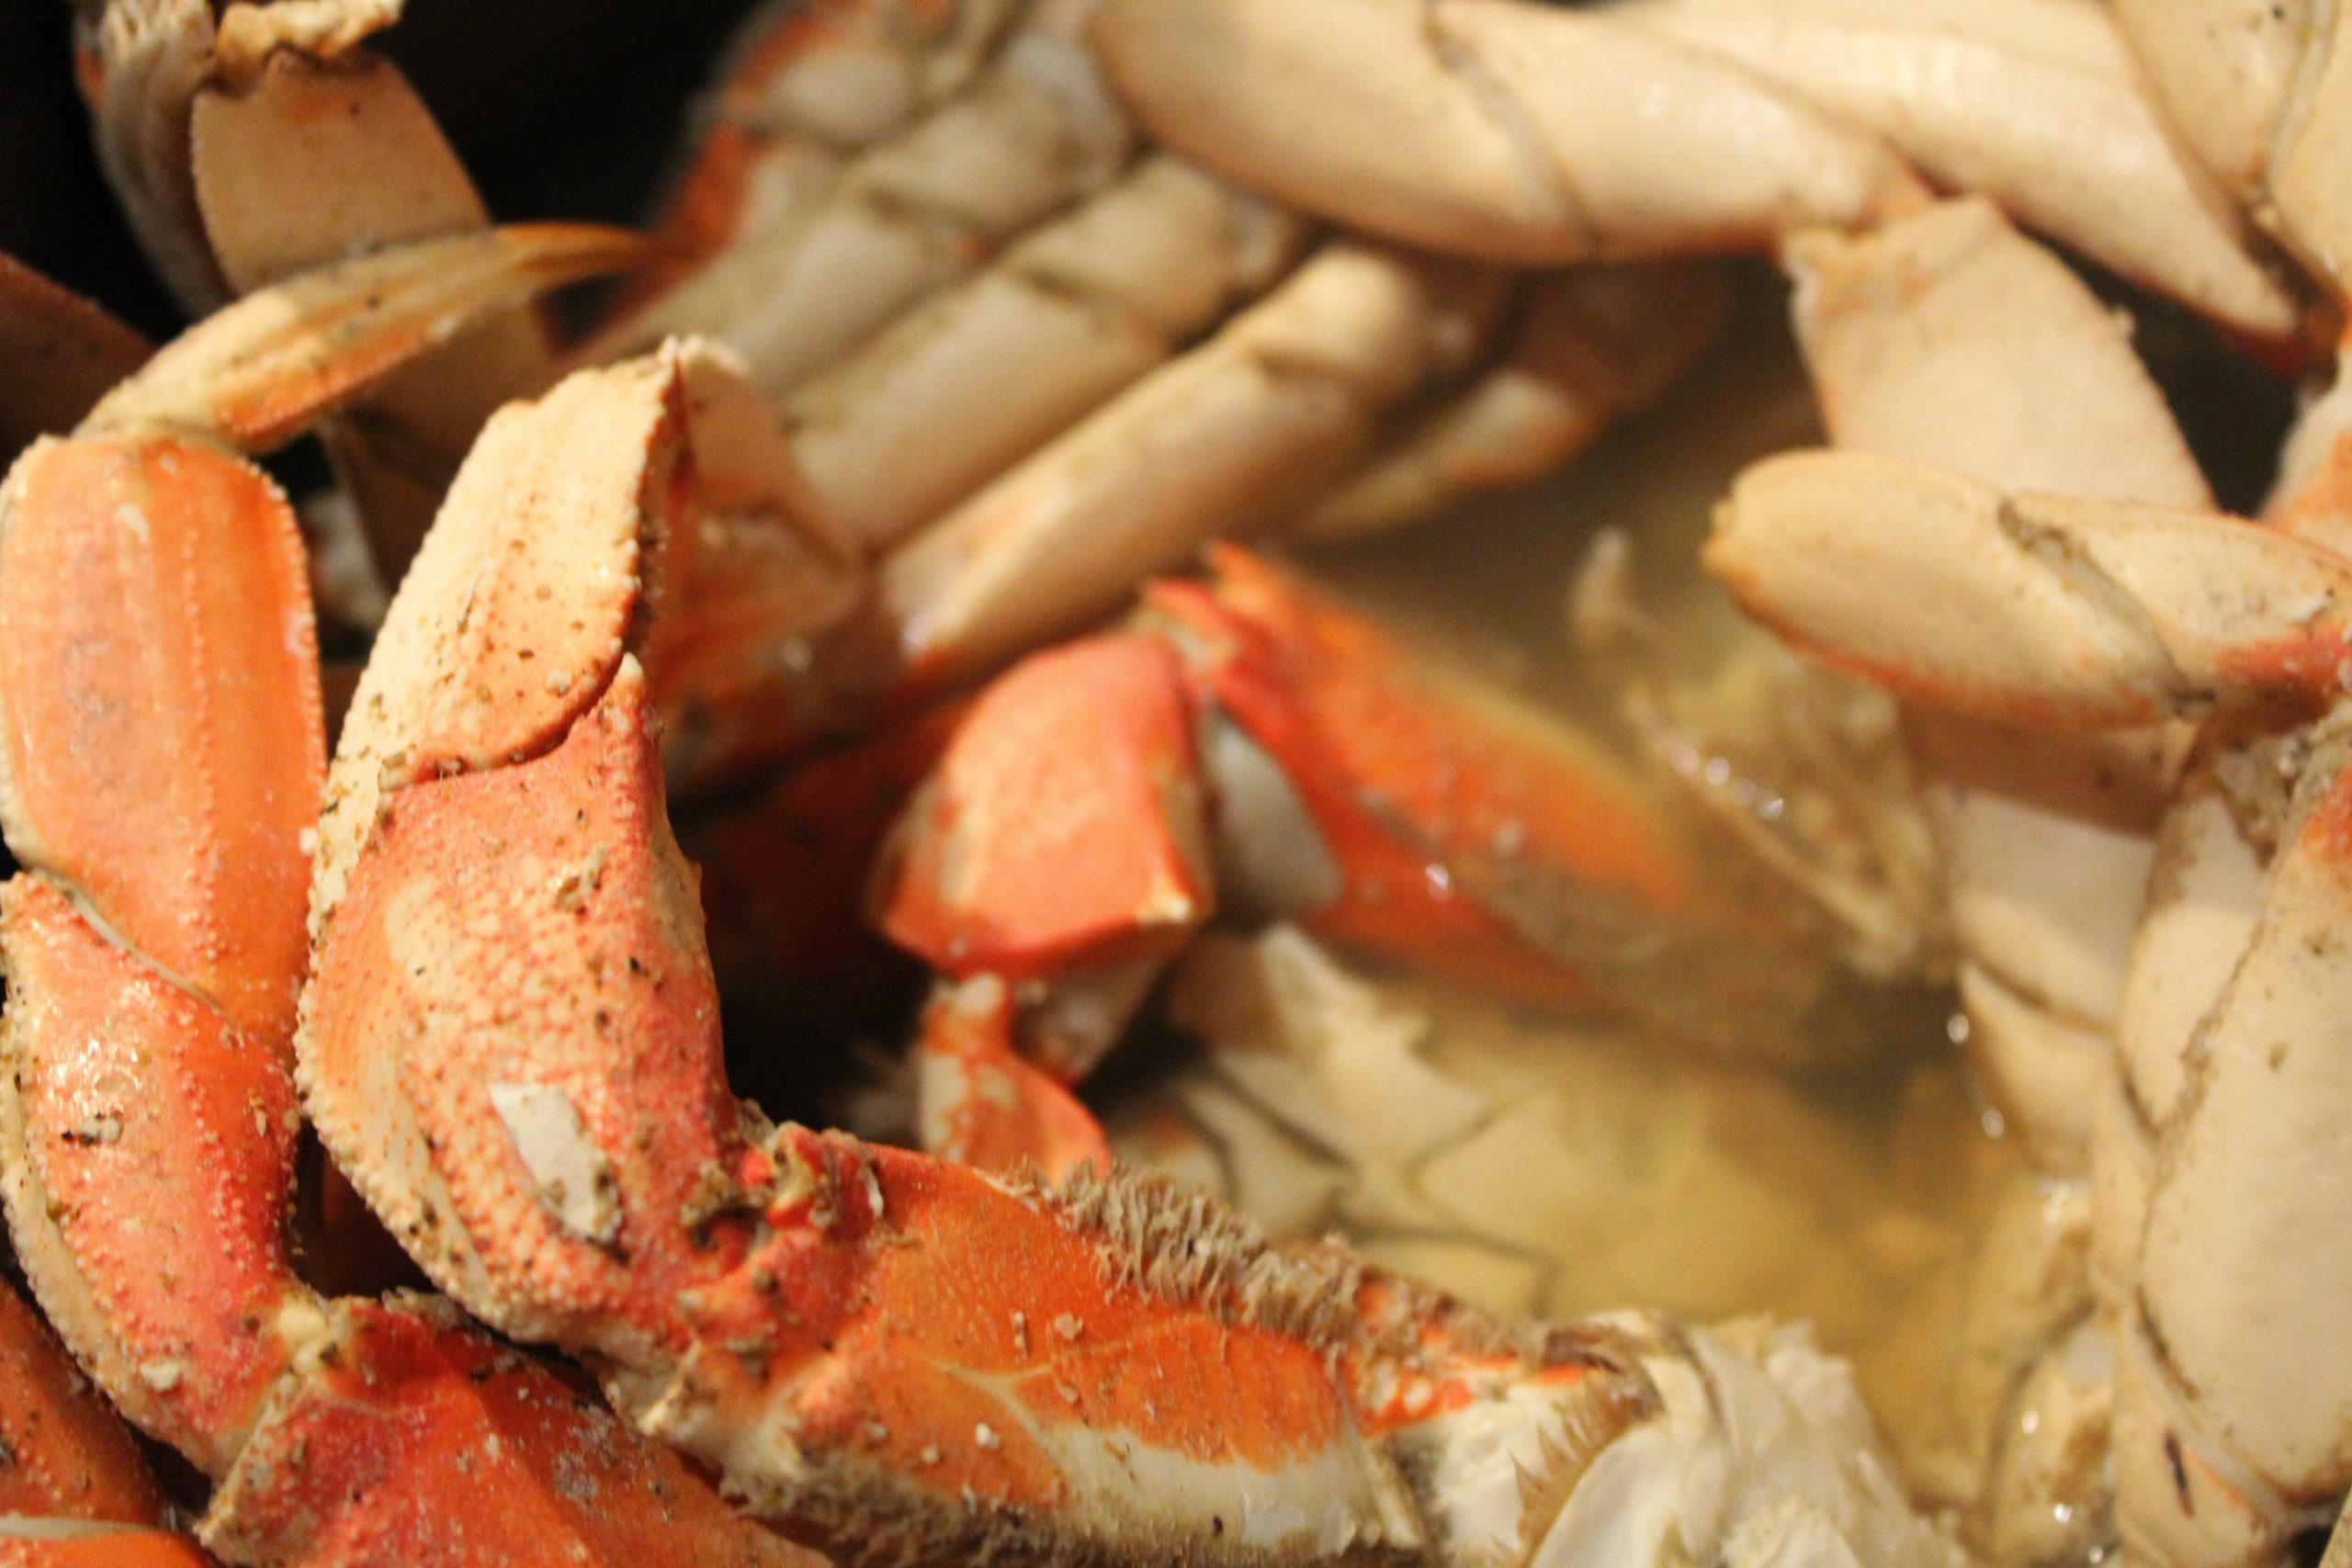 Don't be scared of cooking crab